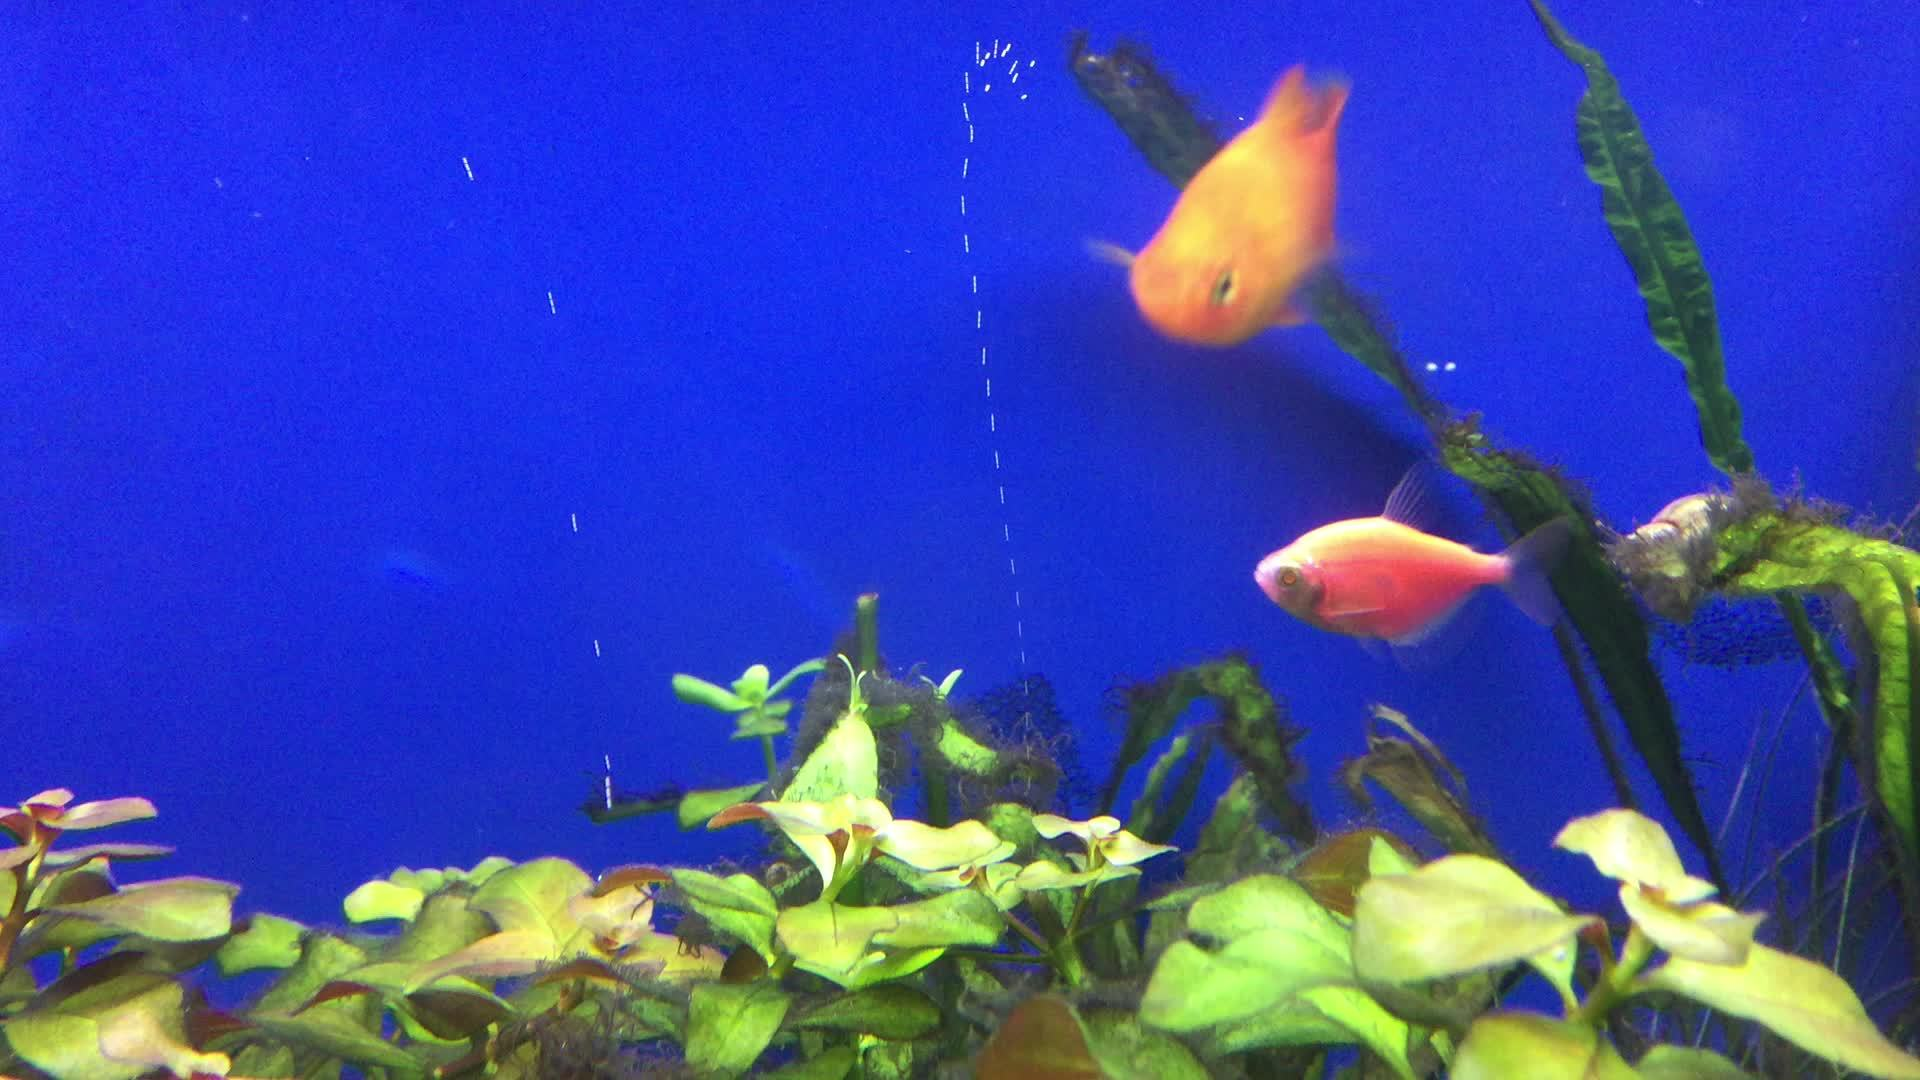 aquariums, plantedtank, Pearling GIFs